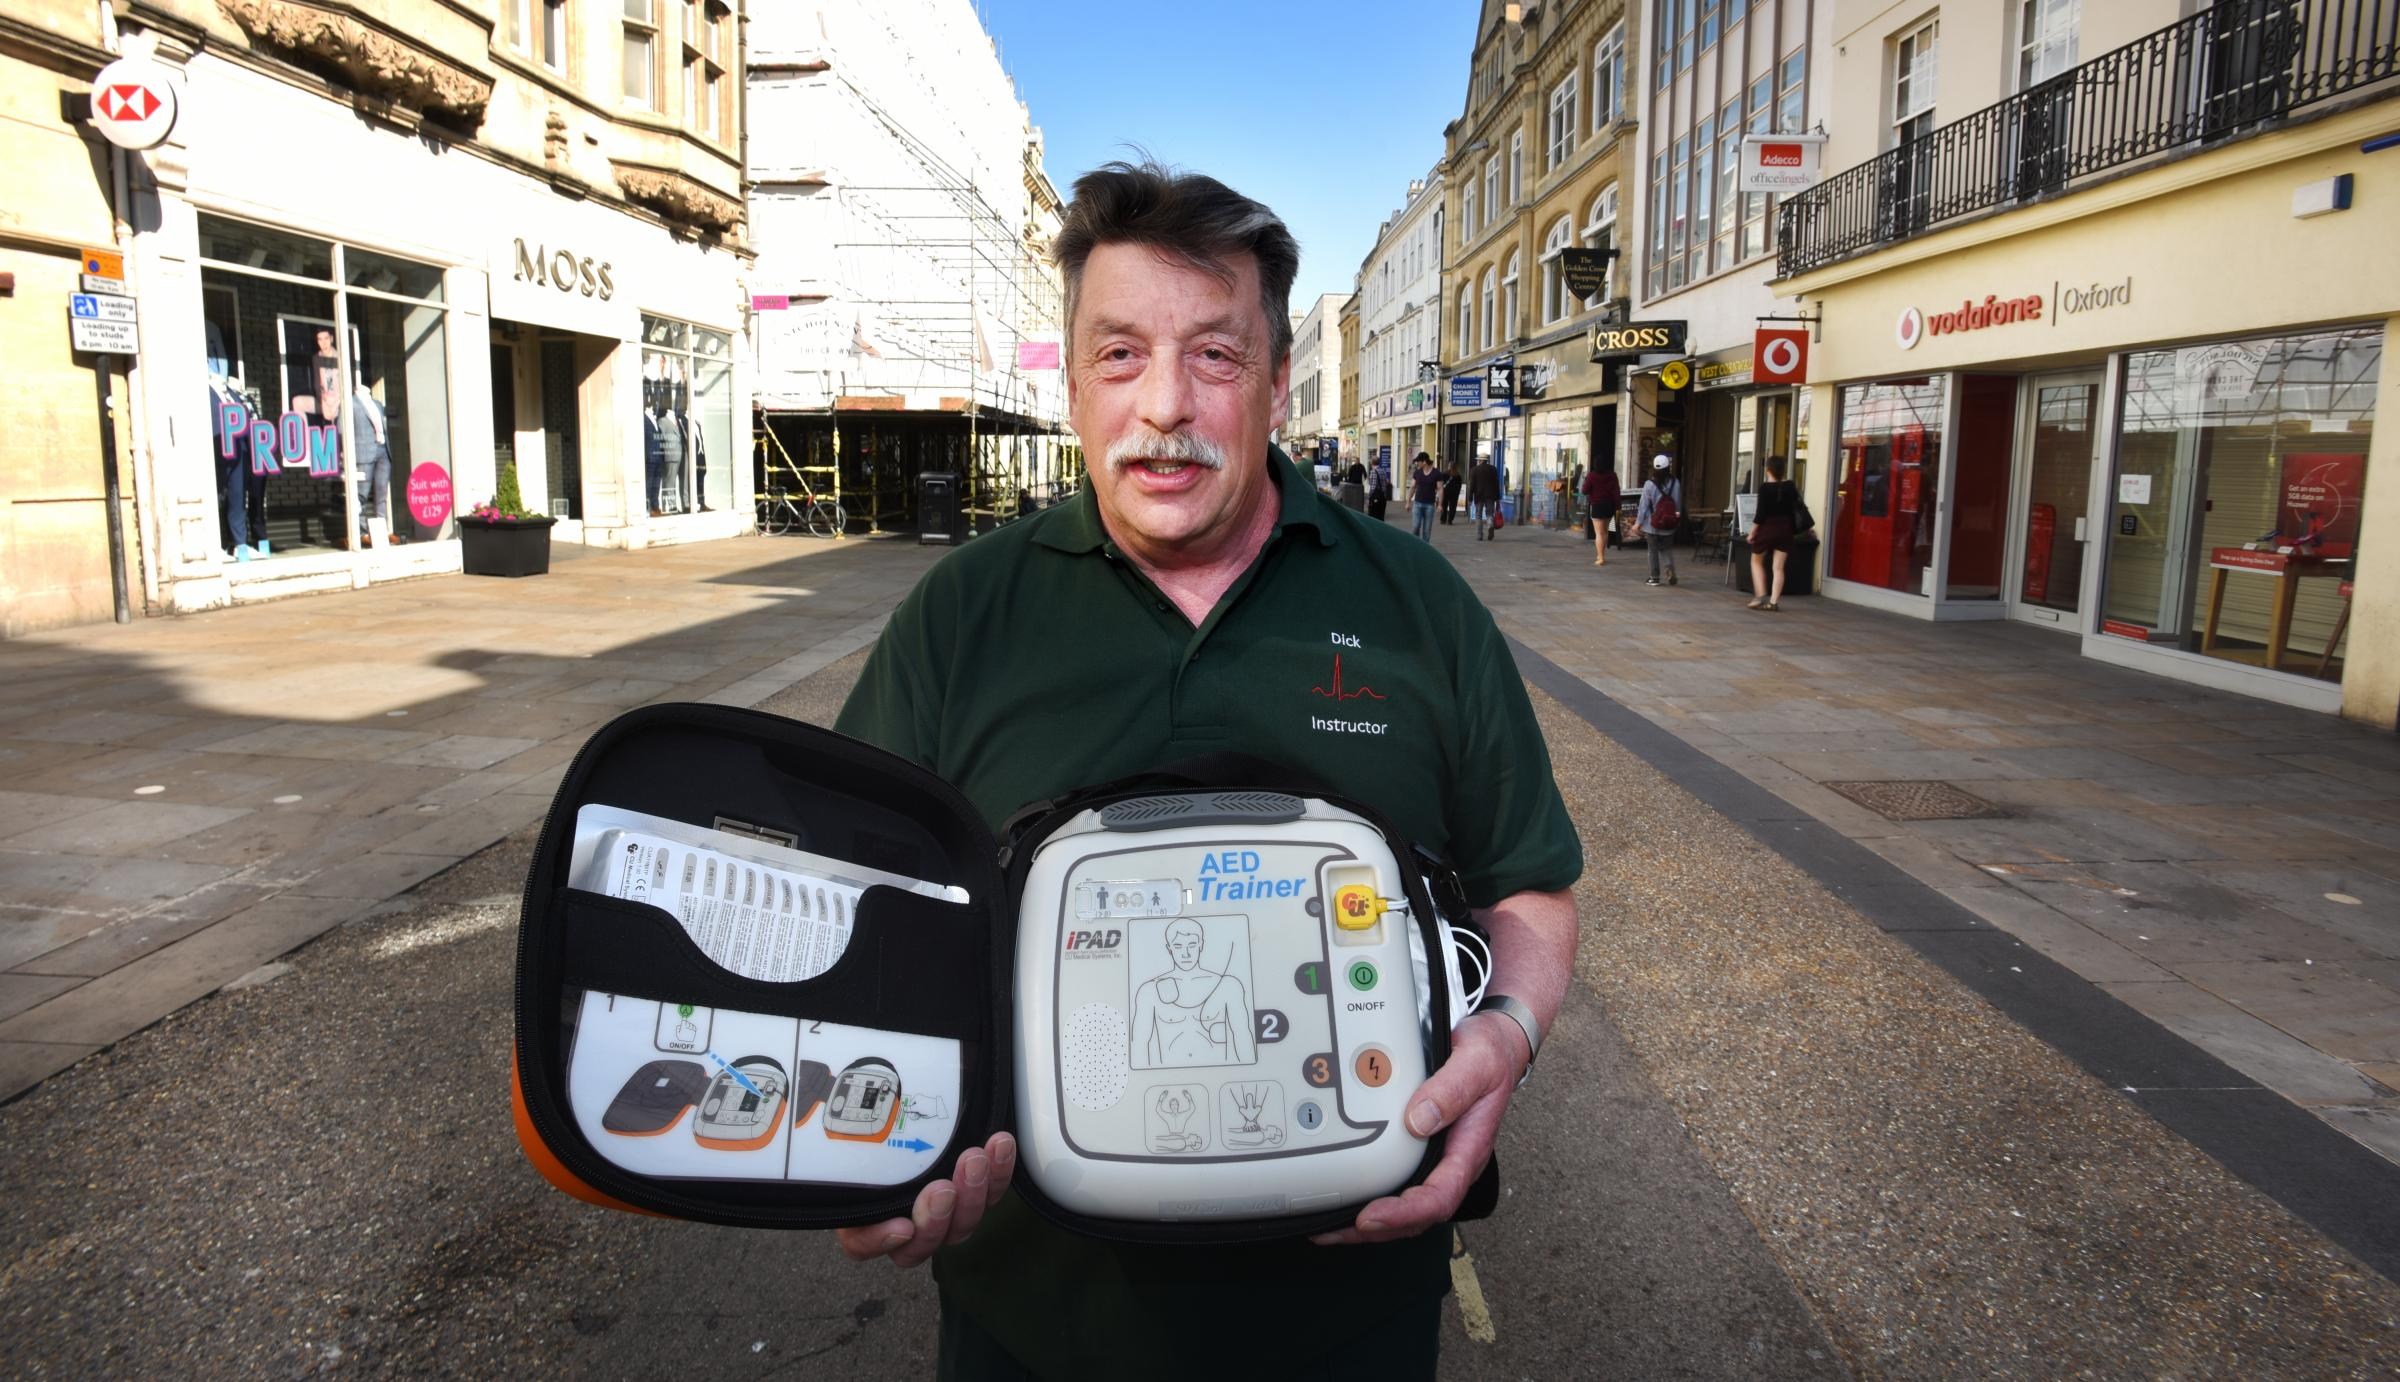 Mr Defibrillator Dick Tracey has called for team work in the city as there are no 24/7 public defibs in the city centre. Nearest is Summertown.